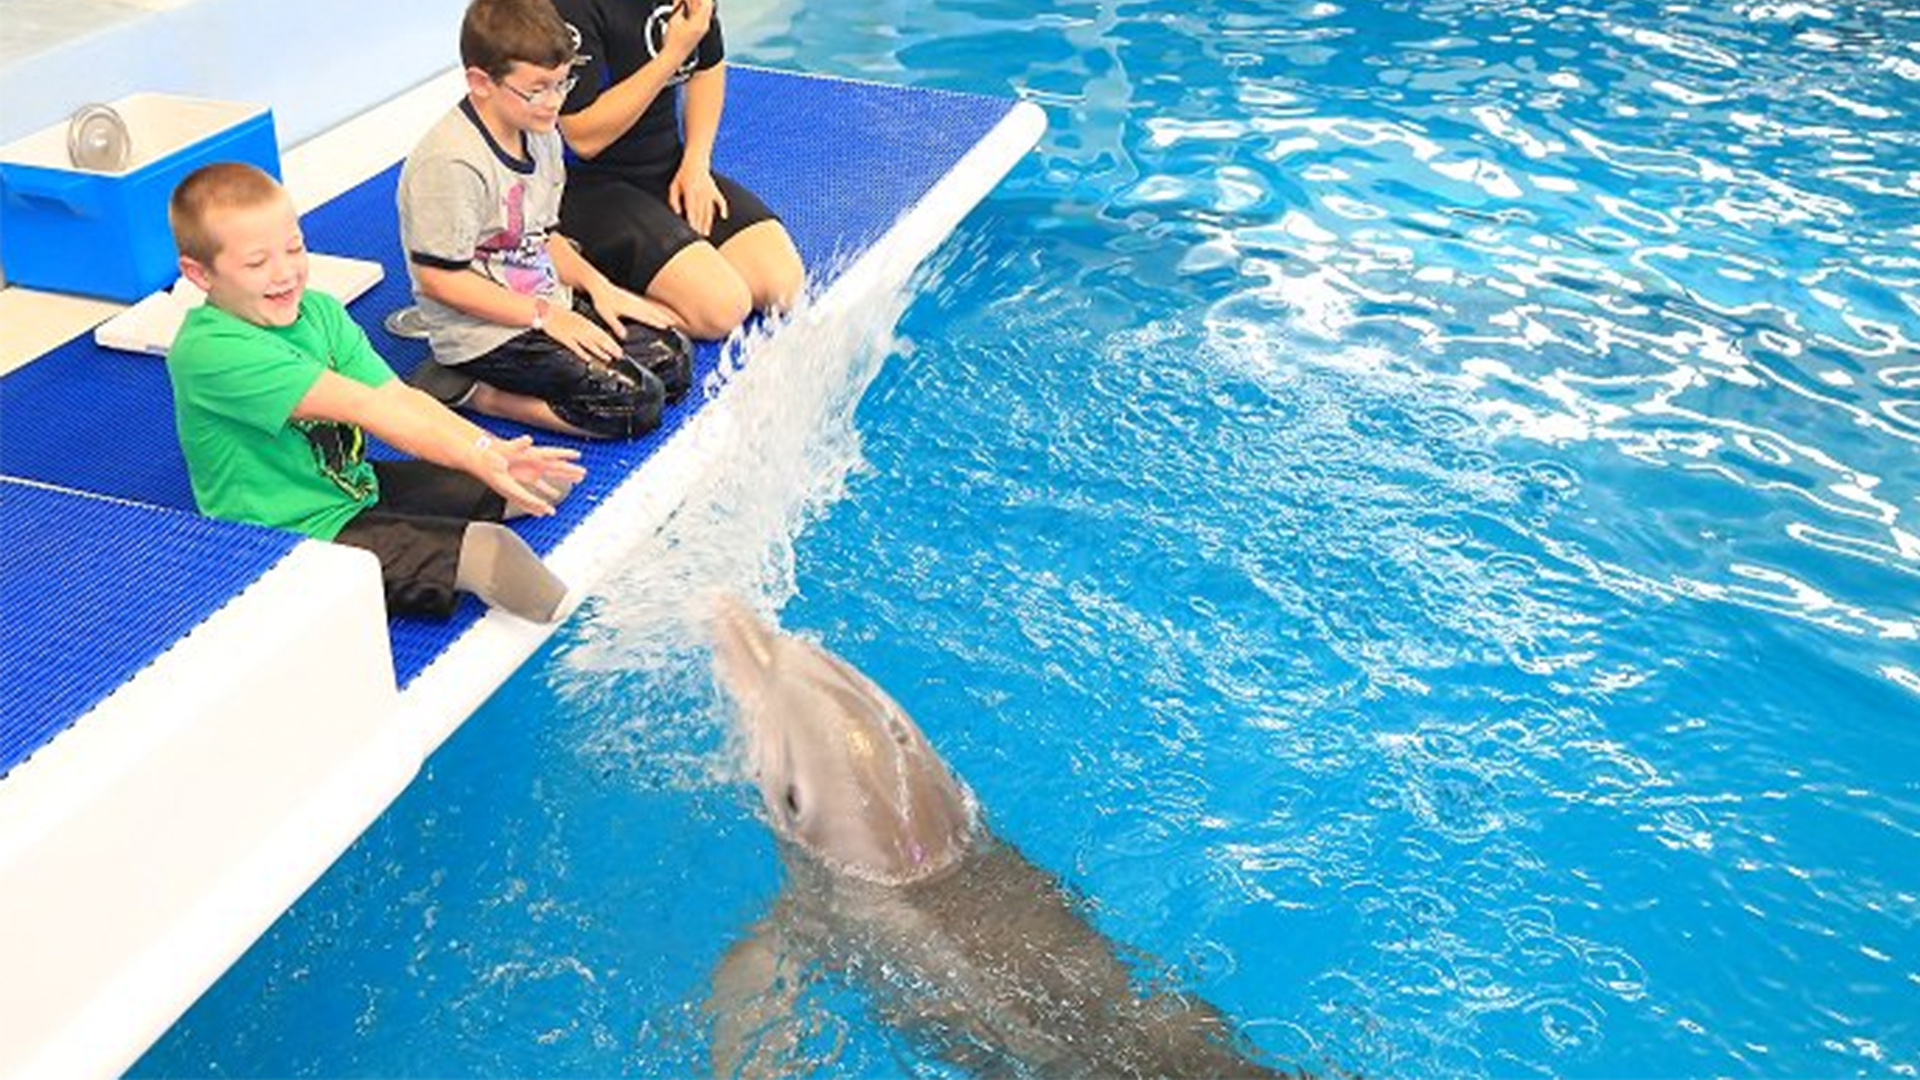 7-Year-Old Boy with Prosthetic Legs Becomes 'BFFs' with Winter the Tailless Dolphin: 'She's Just Like Me!'